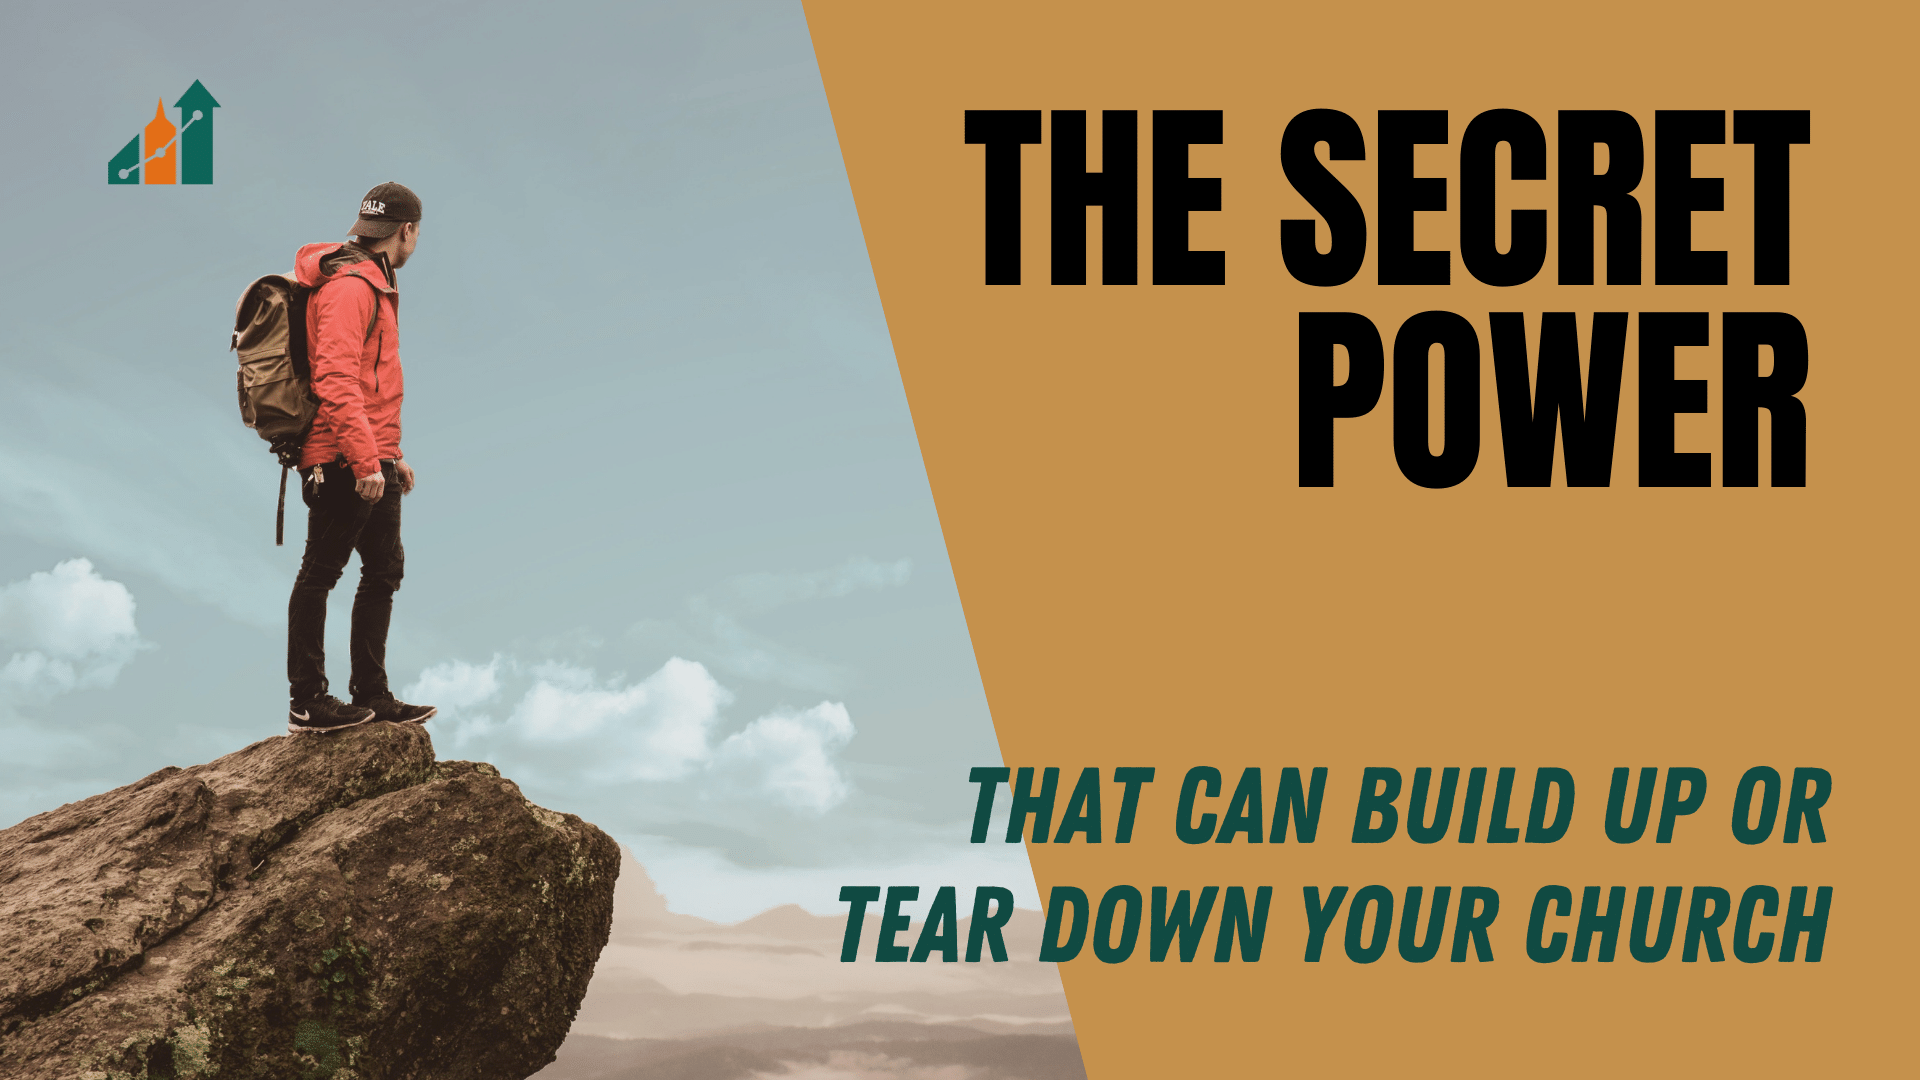 church-core-values_secret-power-that-can-build-up-or-tear-down-your-church_header-image_the-malphurs-group